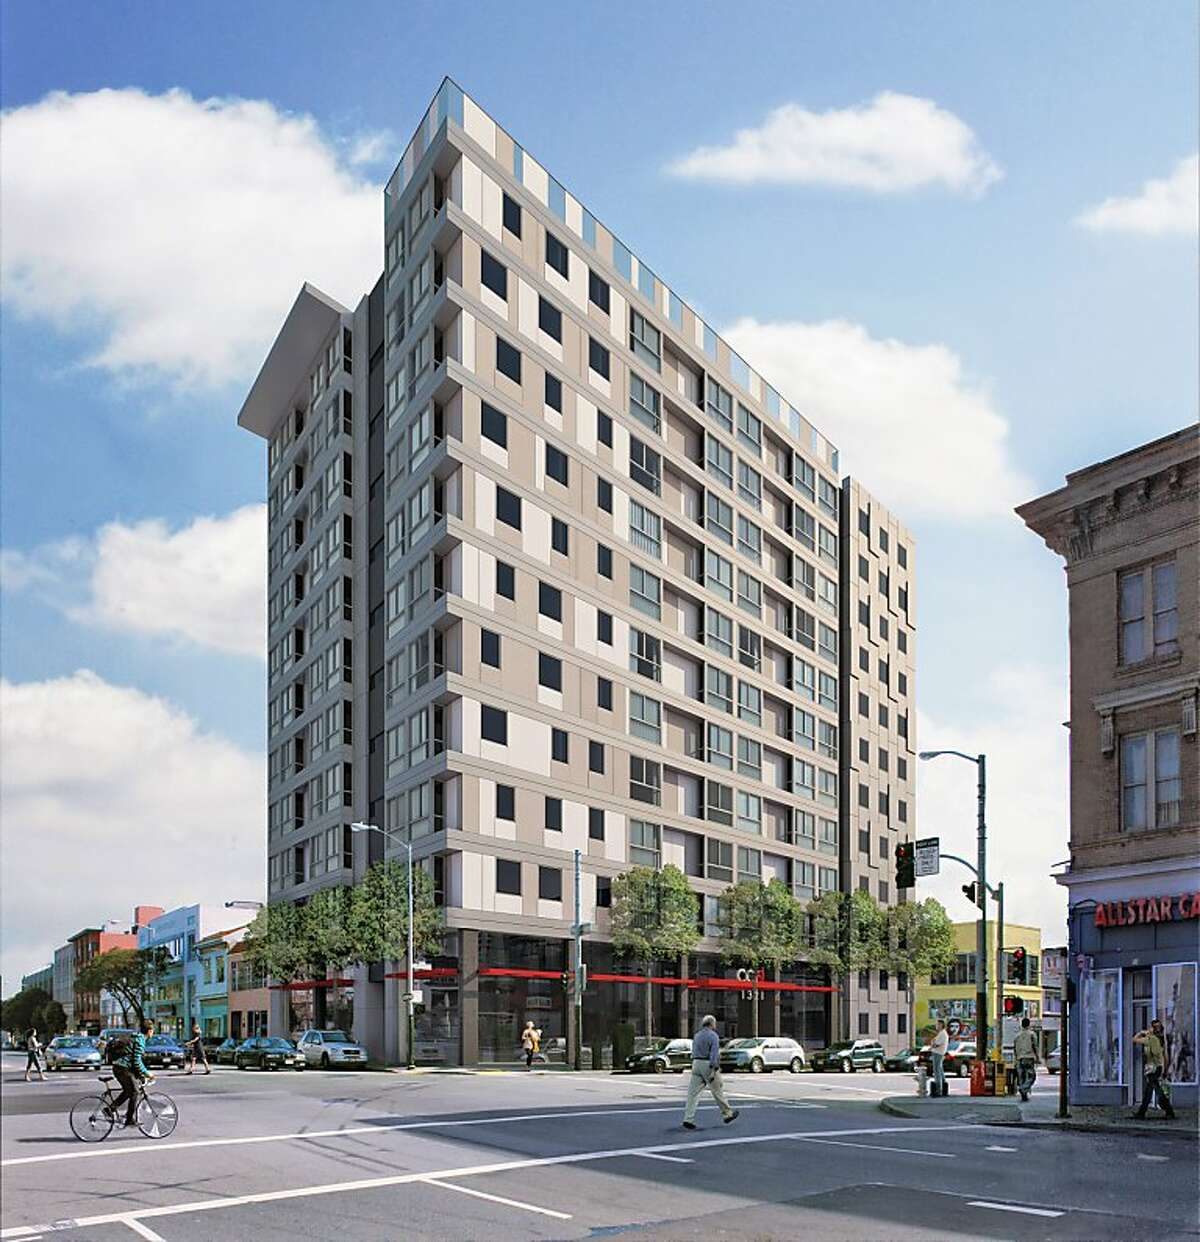 Microapartment complex at 9th and Mission Streets, San Francicso, being built in 2013. The complex is near the Twitter offices.